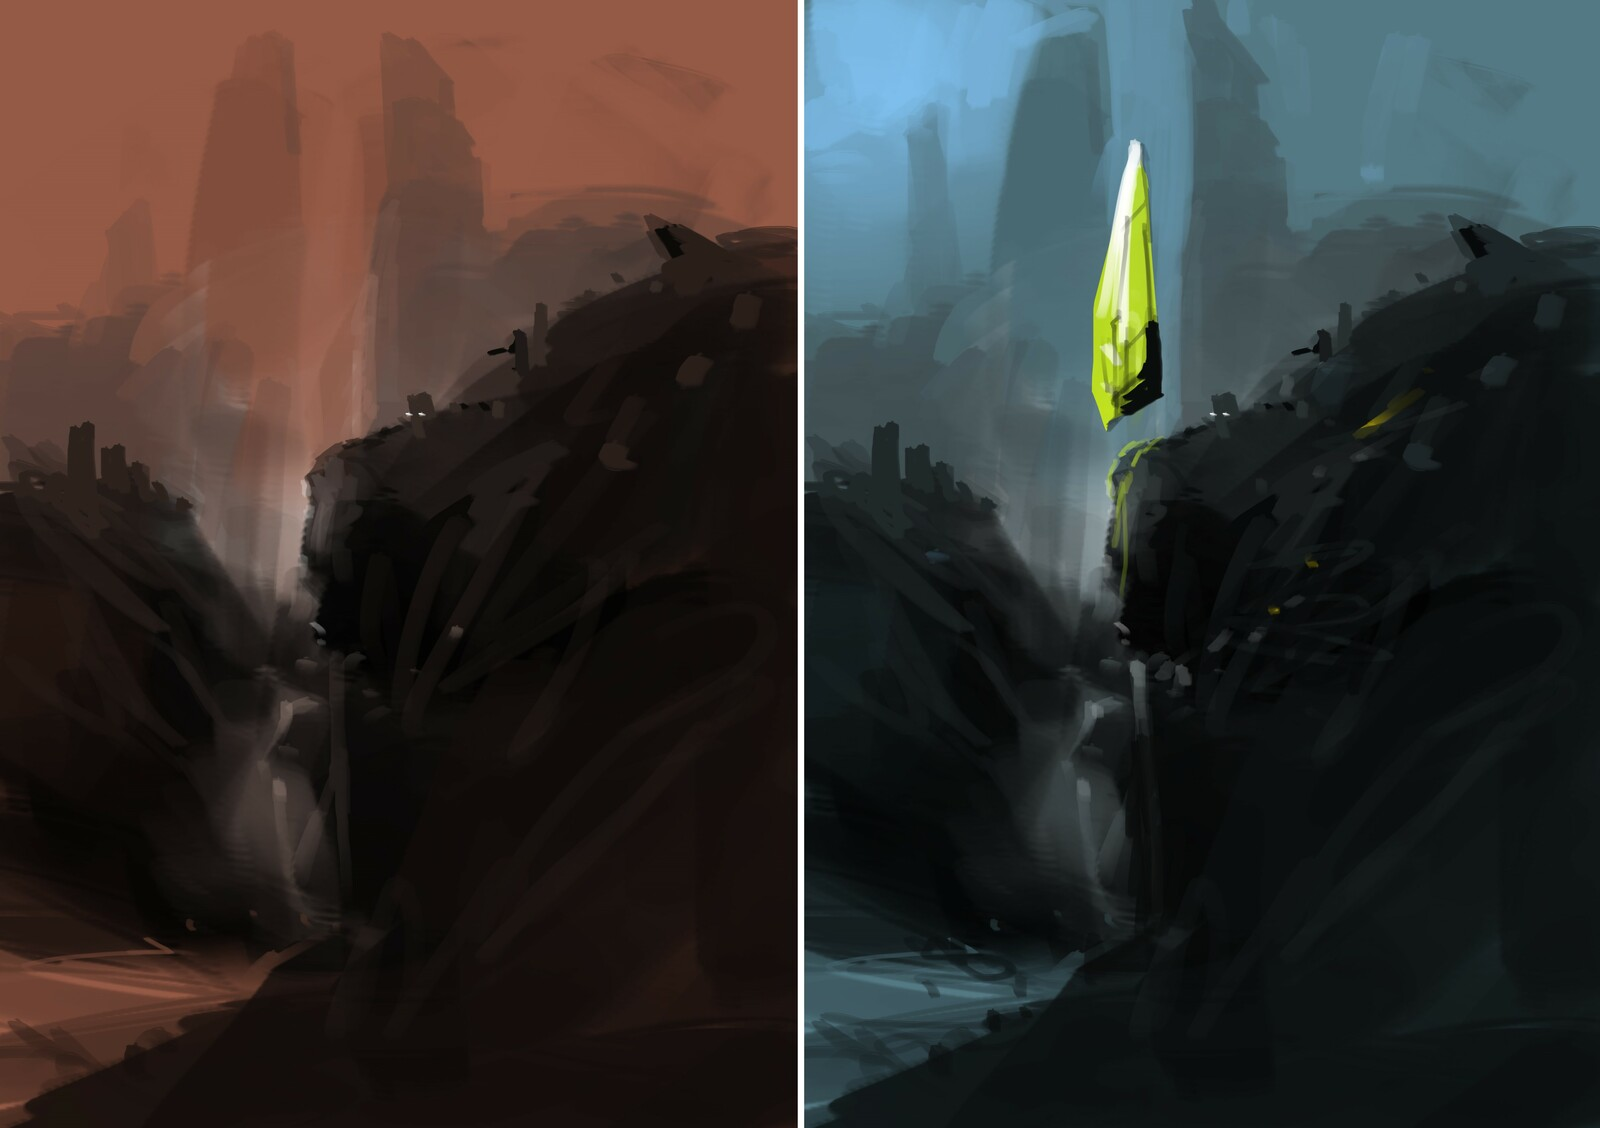 environment concept study for next project